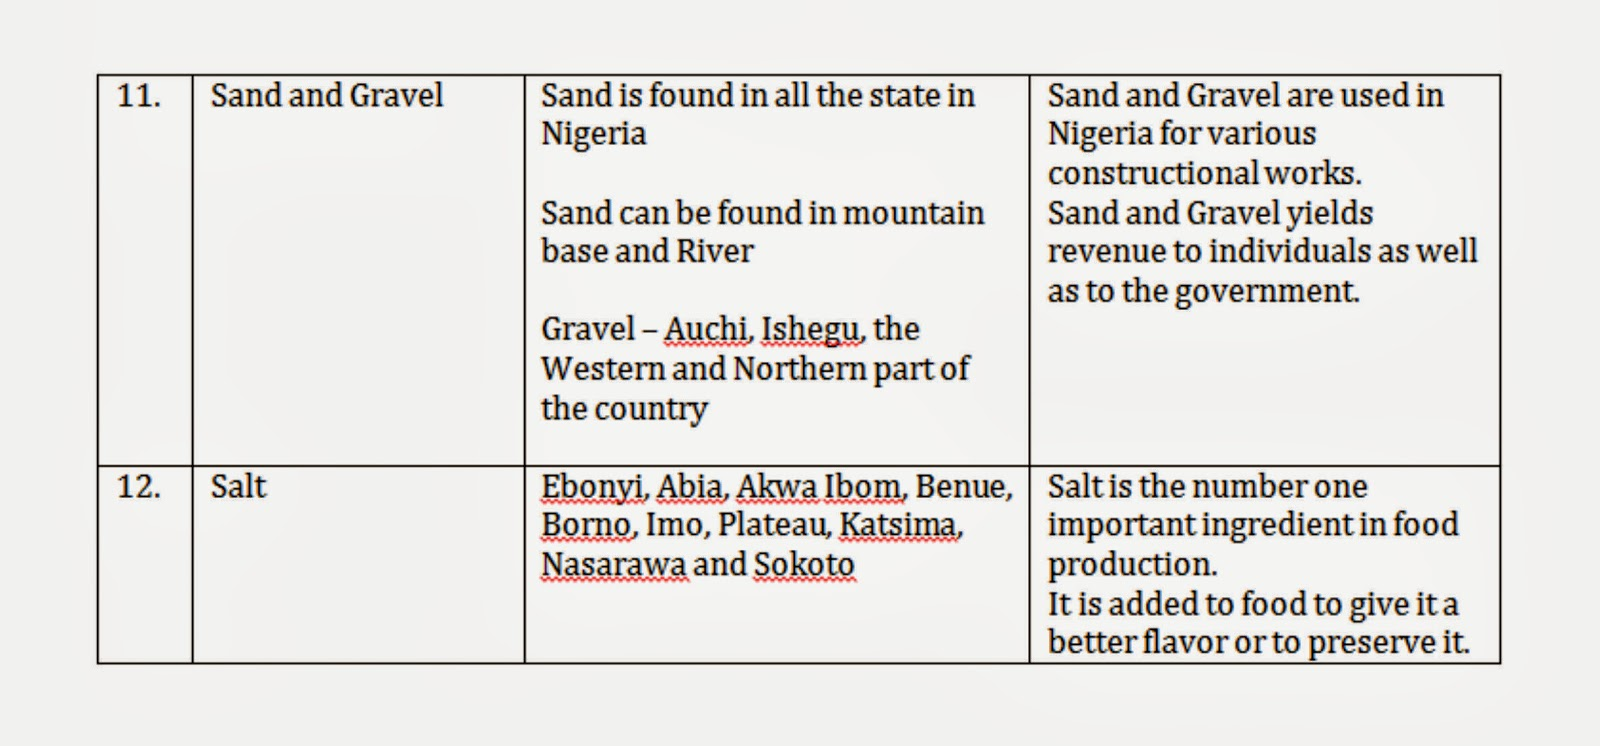 The minerals of Africa are an important economic resource